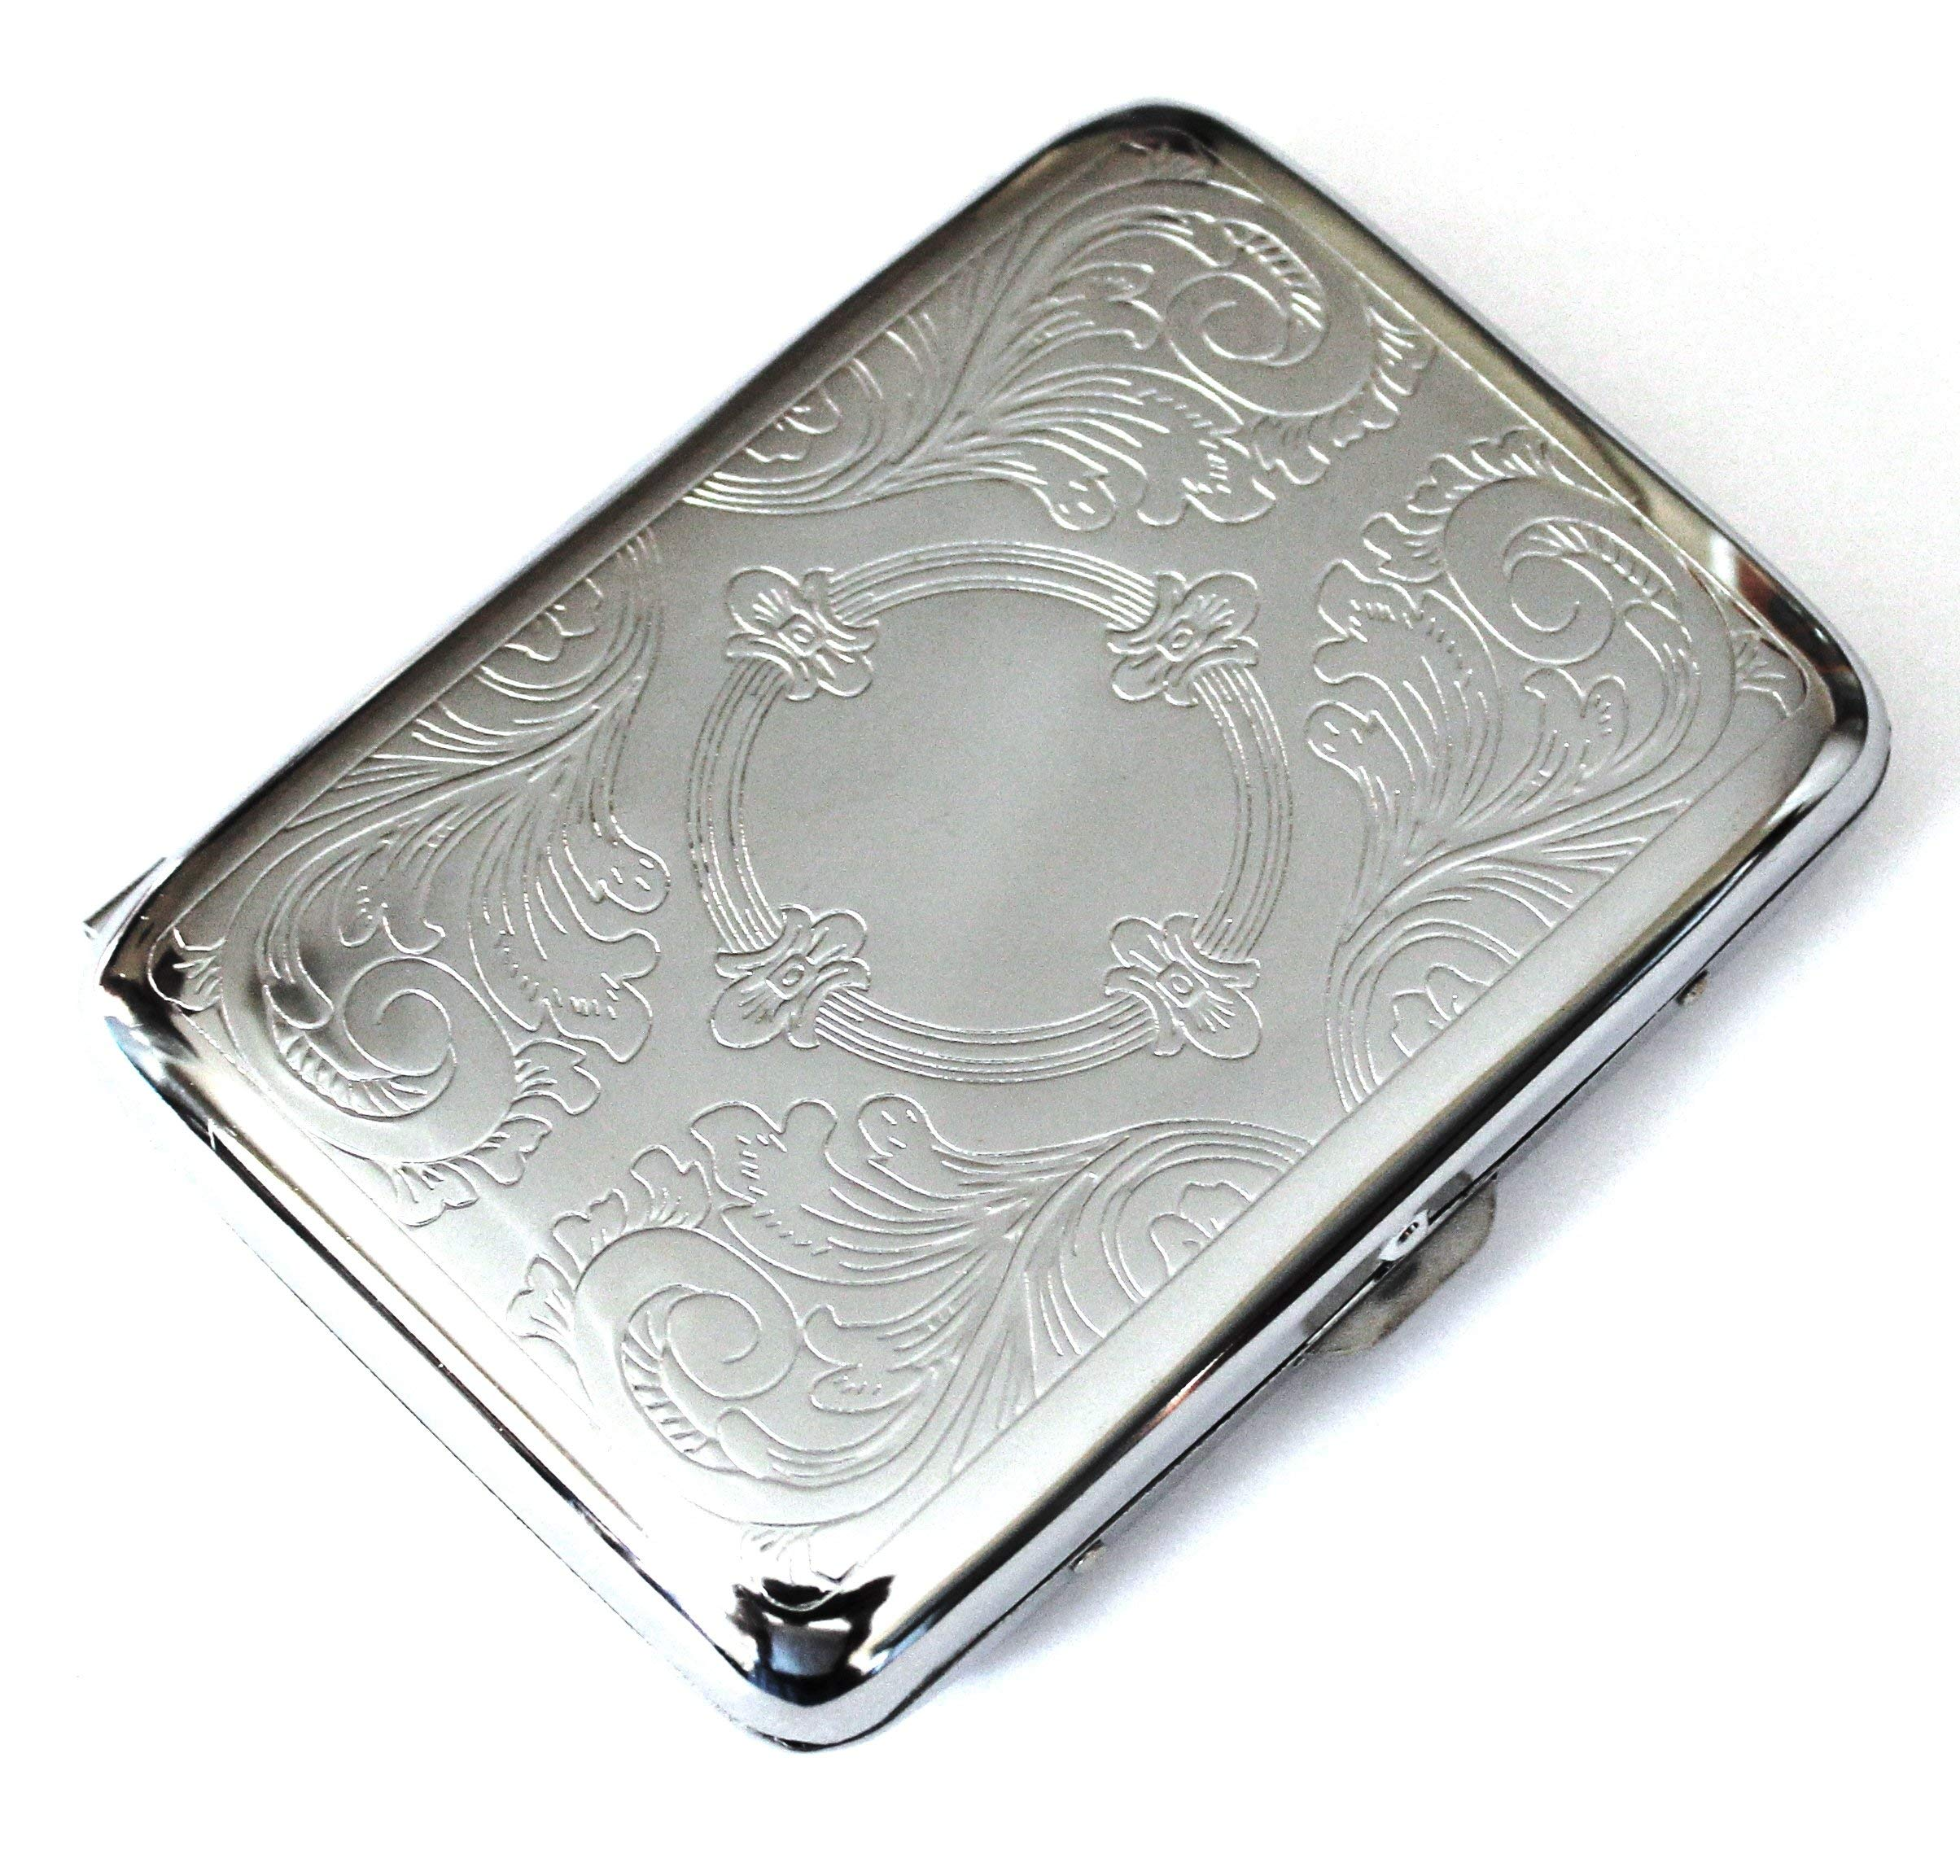 Classic Metallic Silver Color Double Sided King Cigarette Case Etched Design - Shorter Than 100's